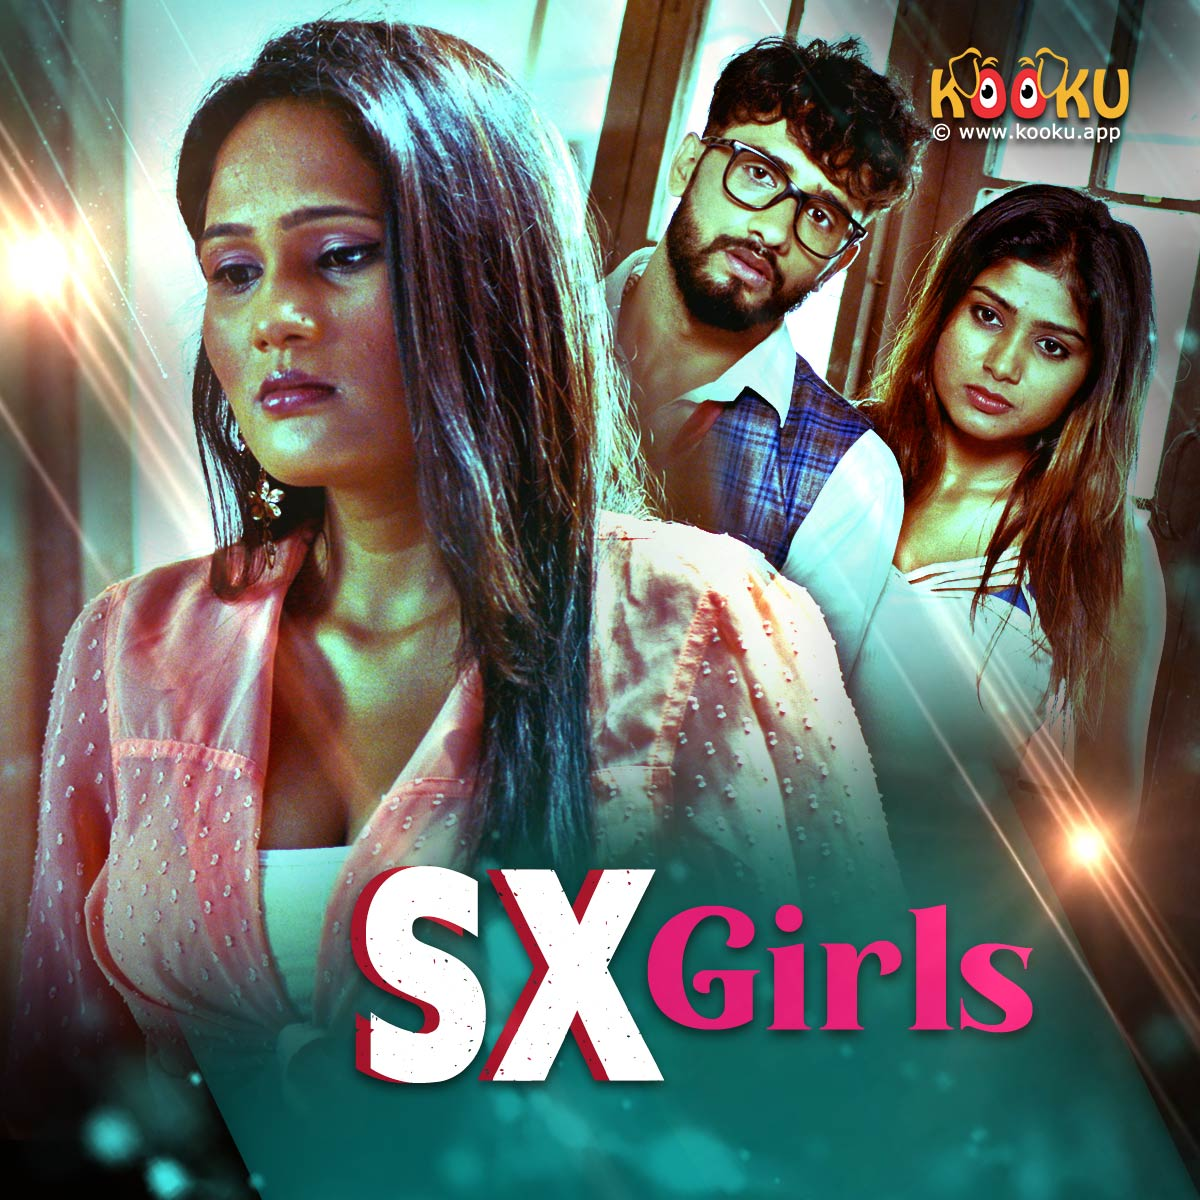 Download SX Girls 2021 S01 Complete Hindi Kooku App Web Series 720p HDRip 300MB